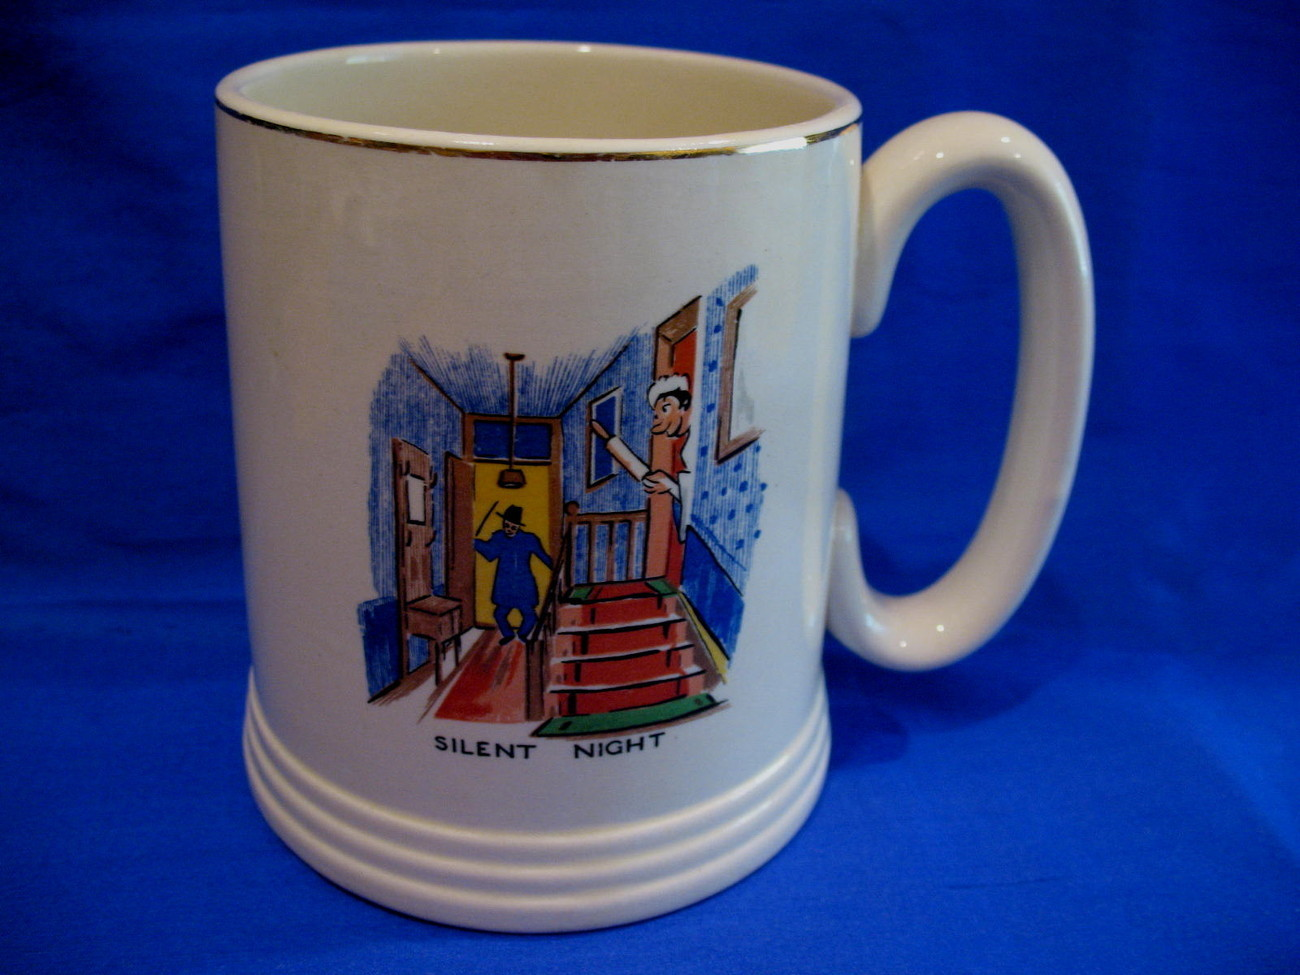 Primary image for Lord Nelson Ware Silent Night Coffee Mug Tea Cup Vintage Beer Stein Collectible